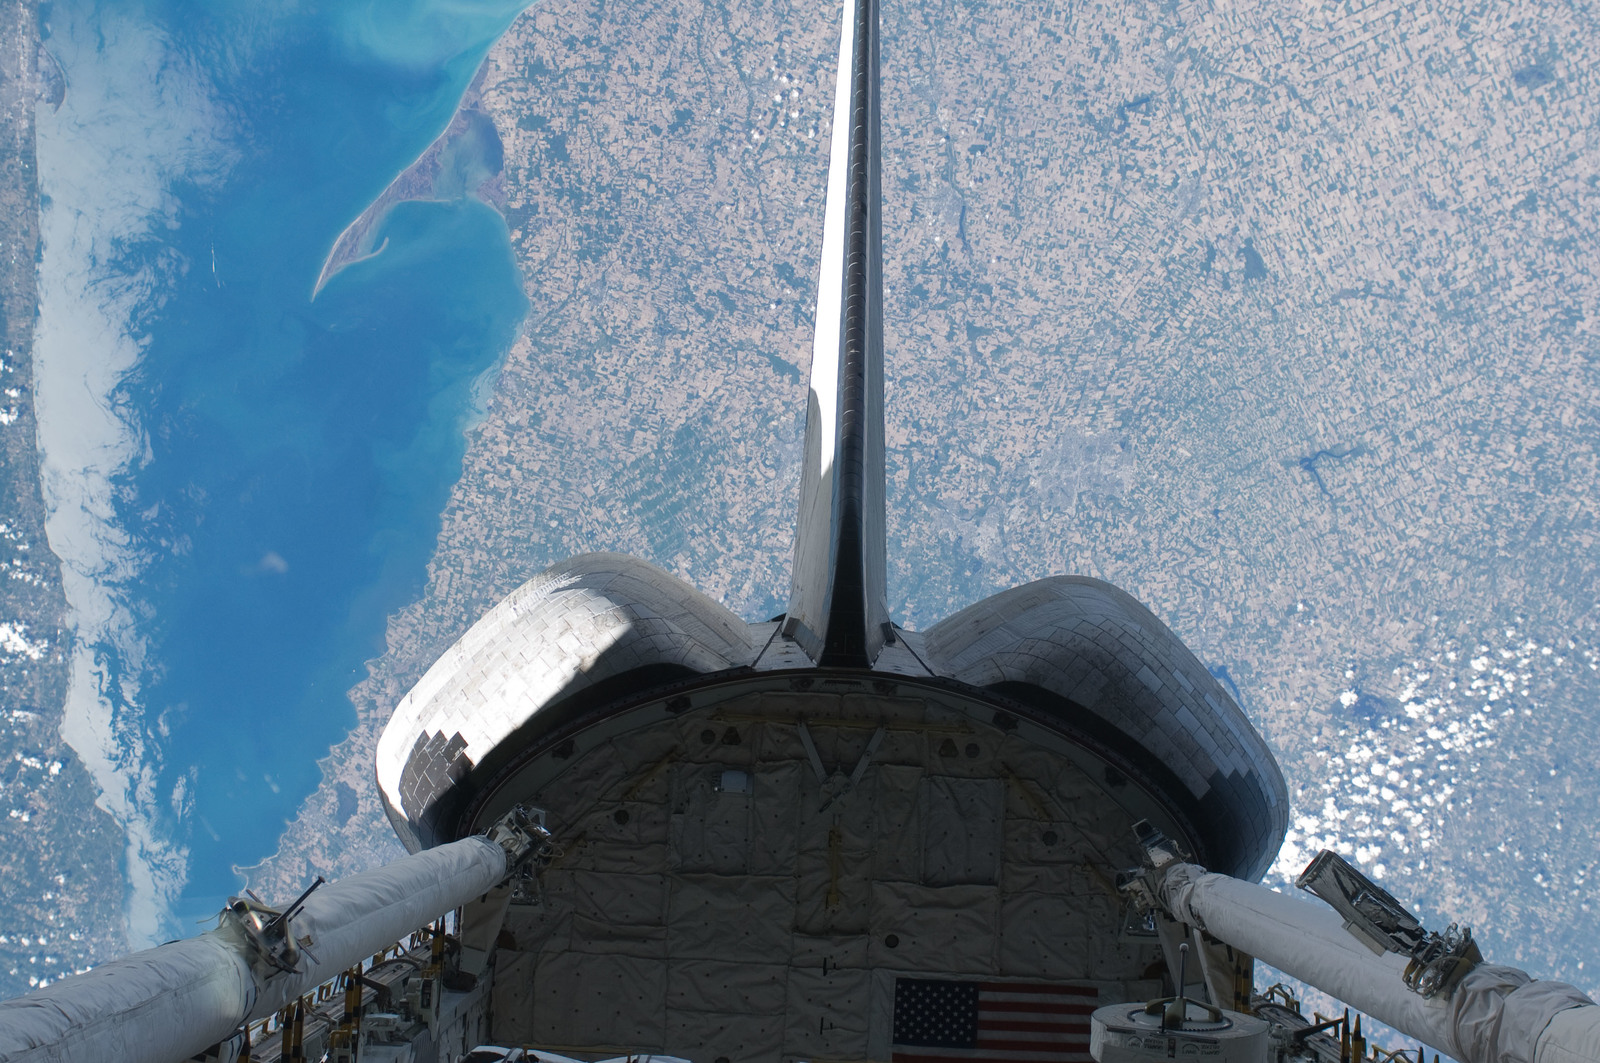 S132E011704 - STS-132 - OMS Pods and Vertical Stabilizer on Space Shuttle Atlantis during STS-132